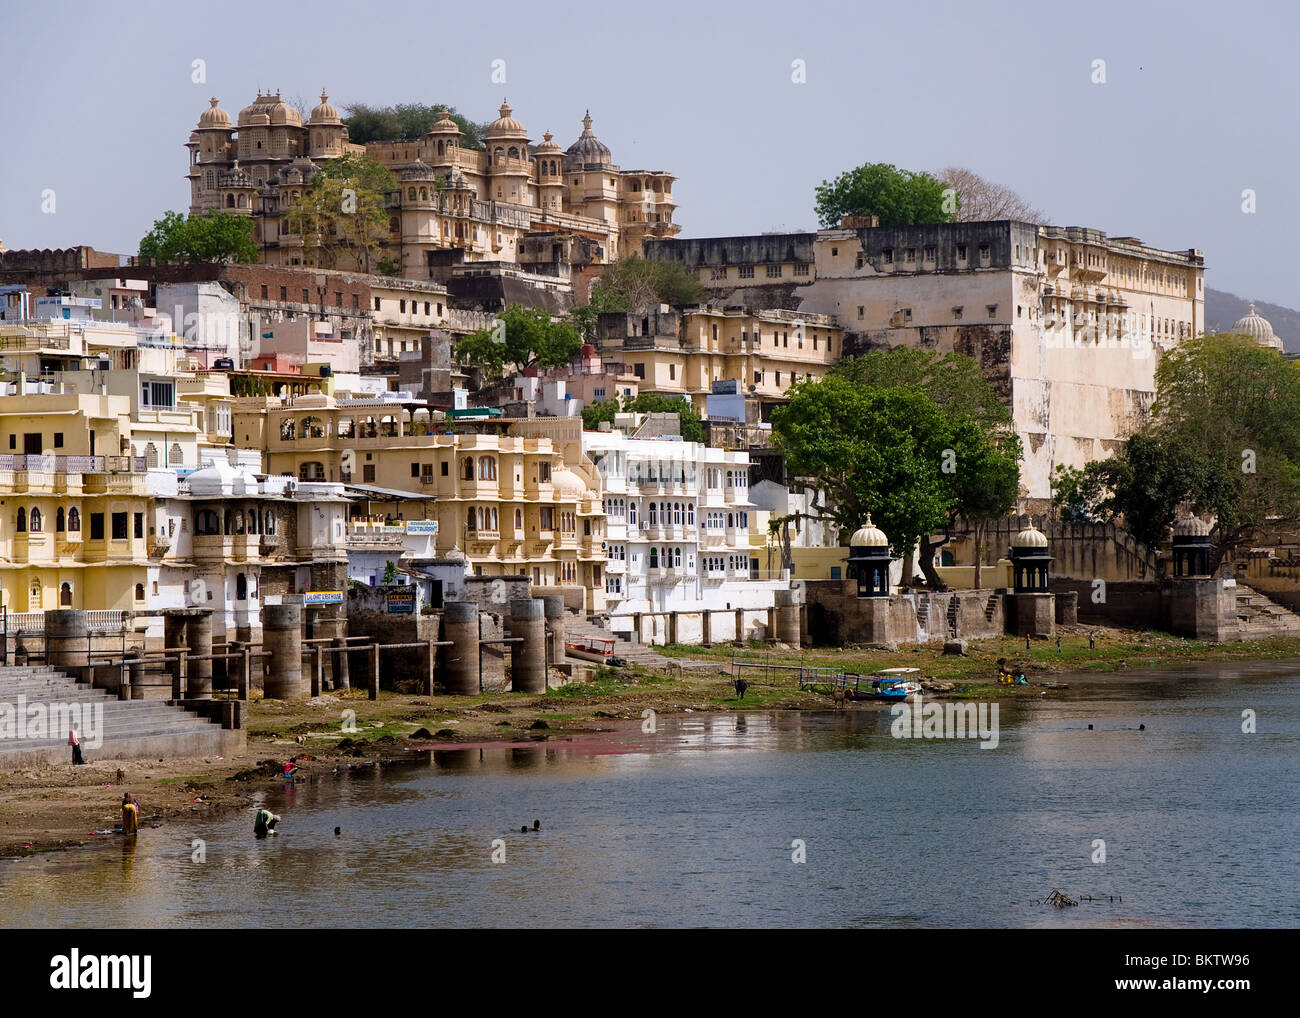 City Palace and Ghats, Udaipur, Rajasthan, India - Stock Image